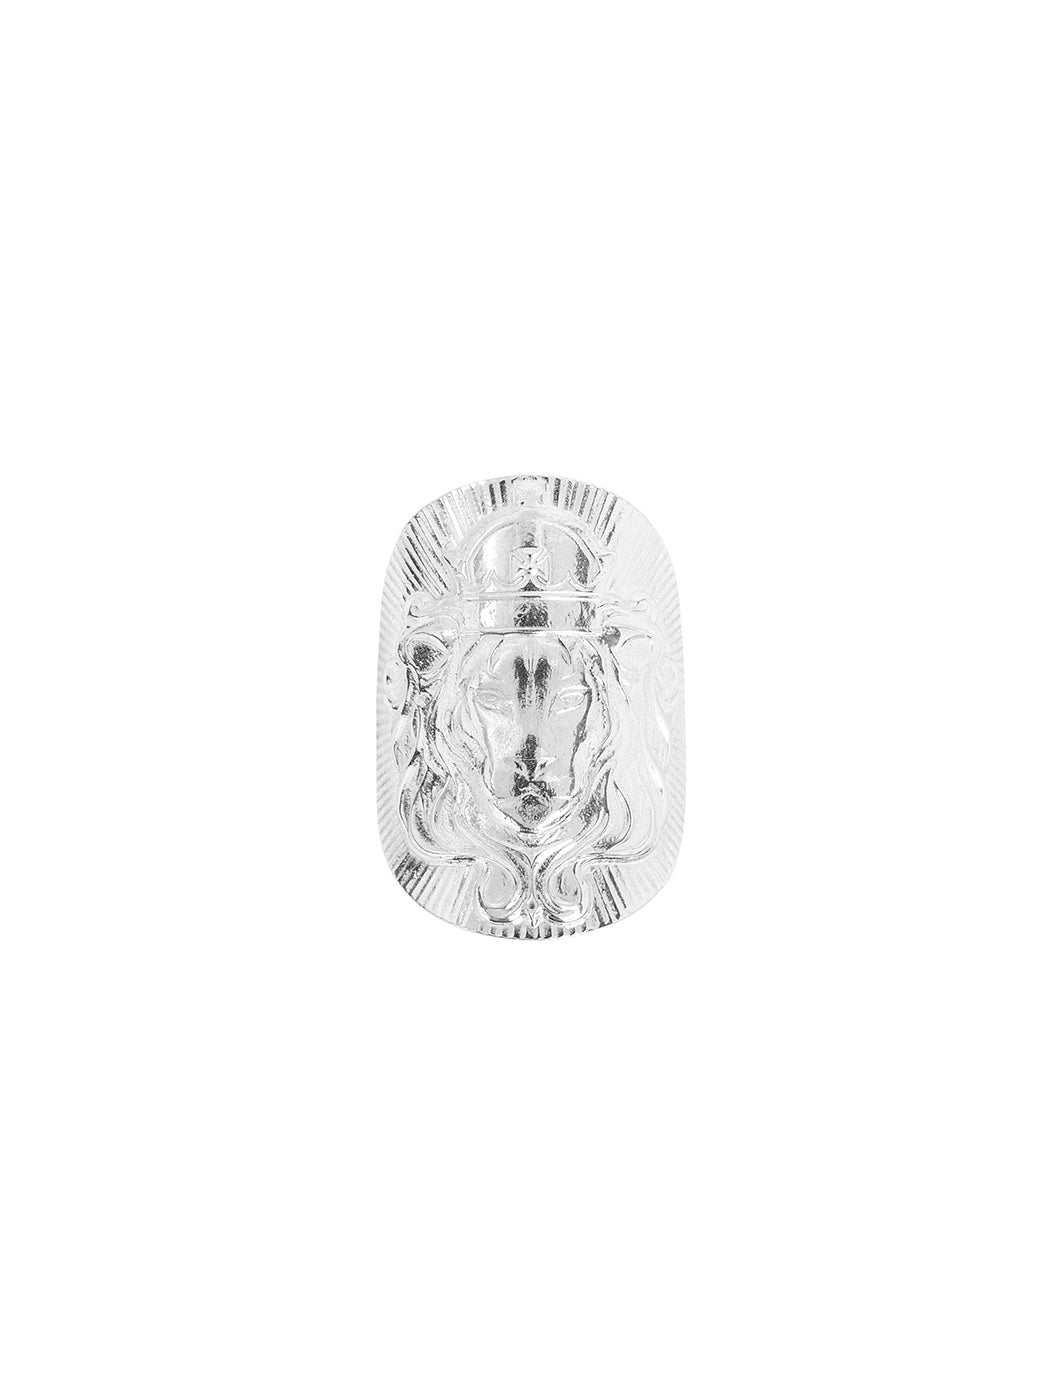 Fiorina Jewellery Leone Bent Coin Ring